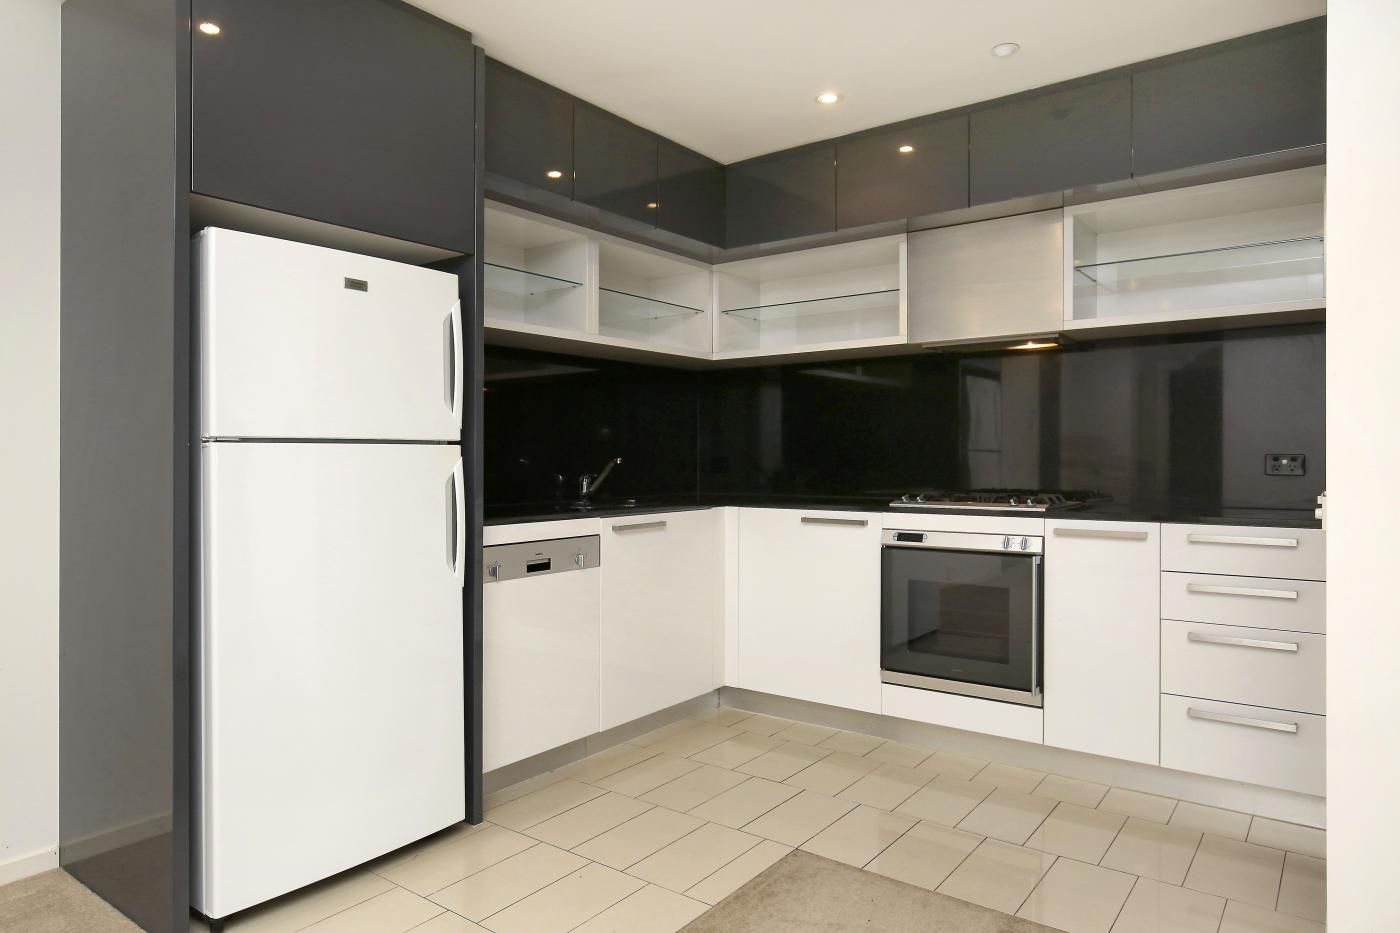 23/8 Cook Street, Southbank VIC 3006, Image 2